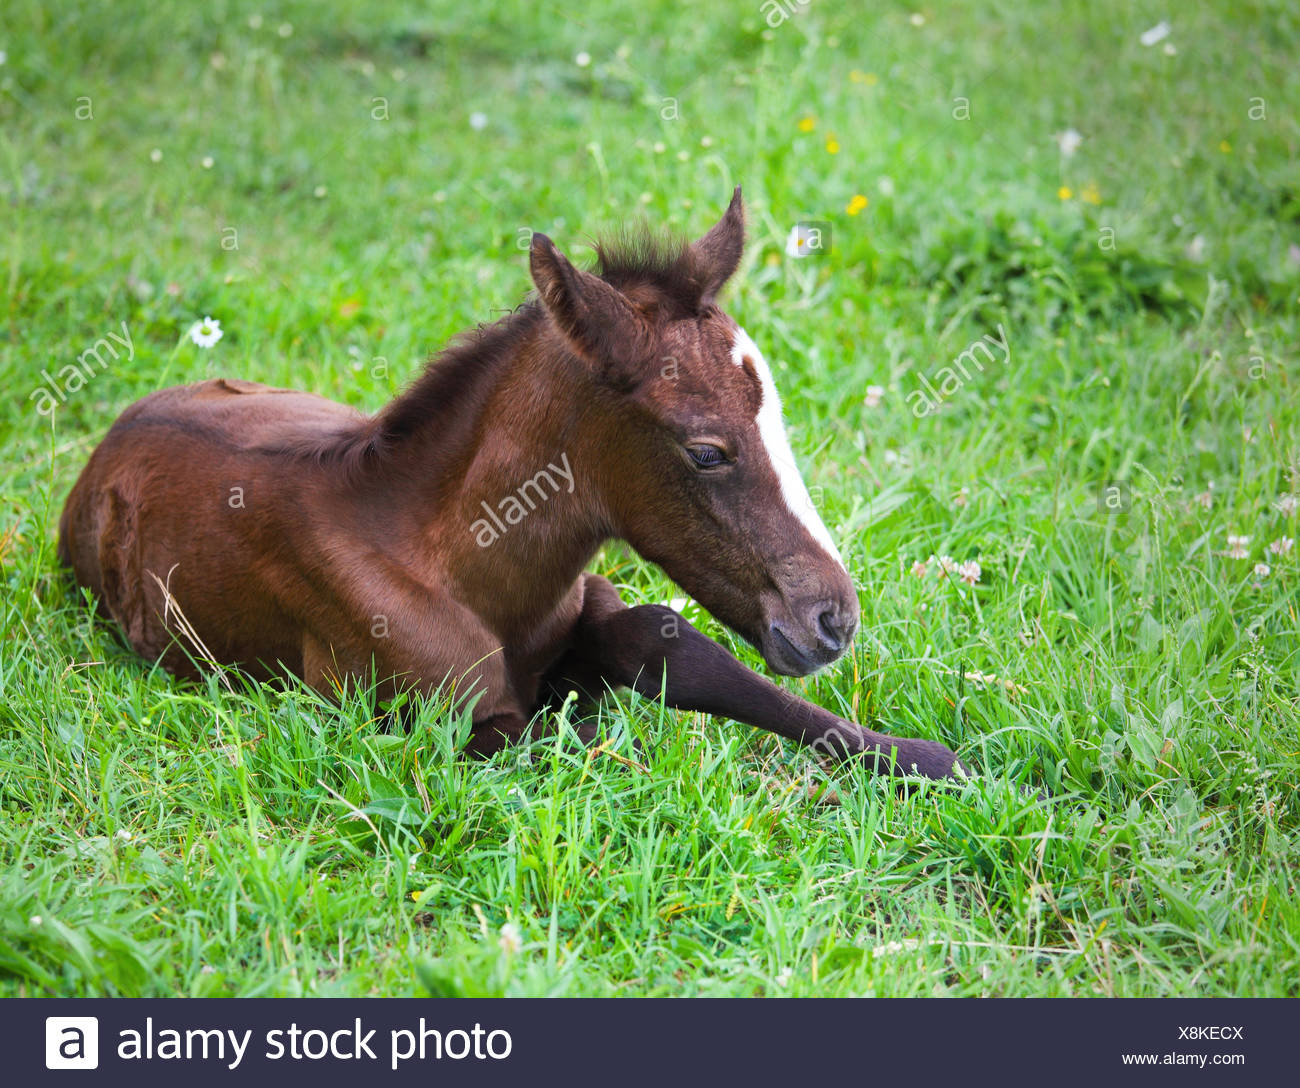 Newborn Baby Horse On The Green Grass Stock Photo Alamy